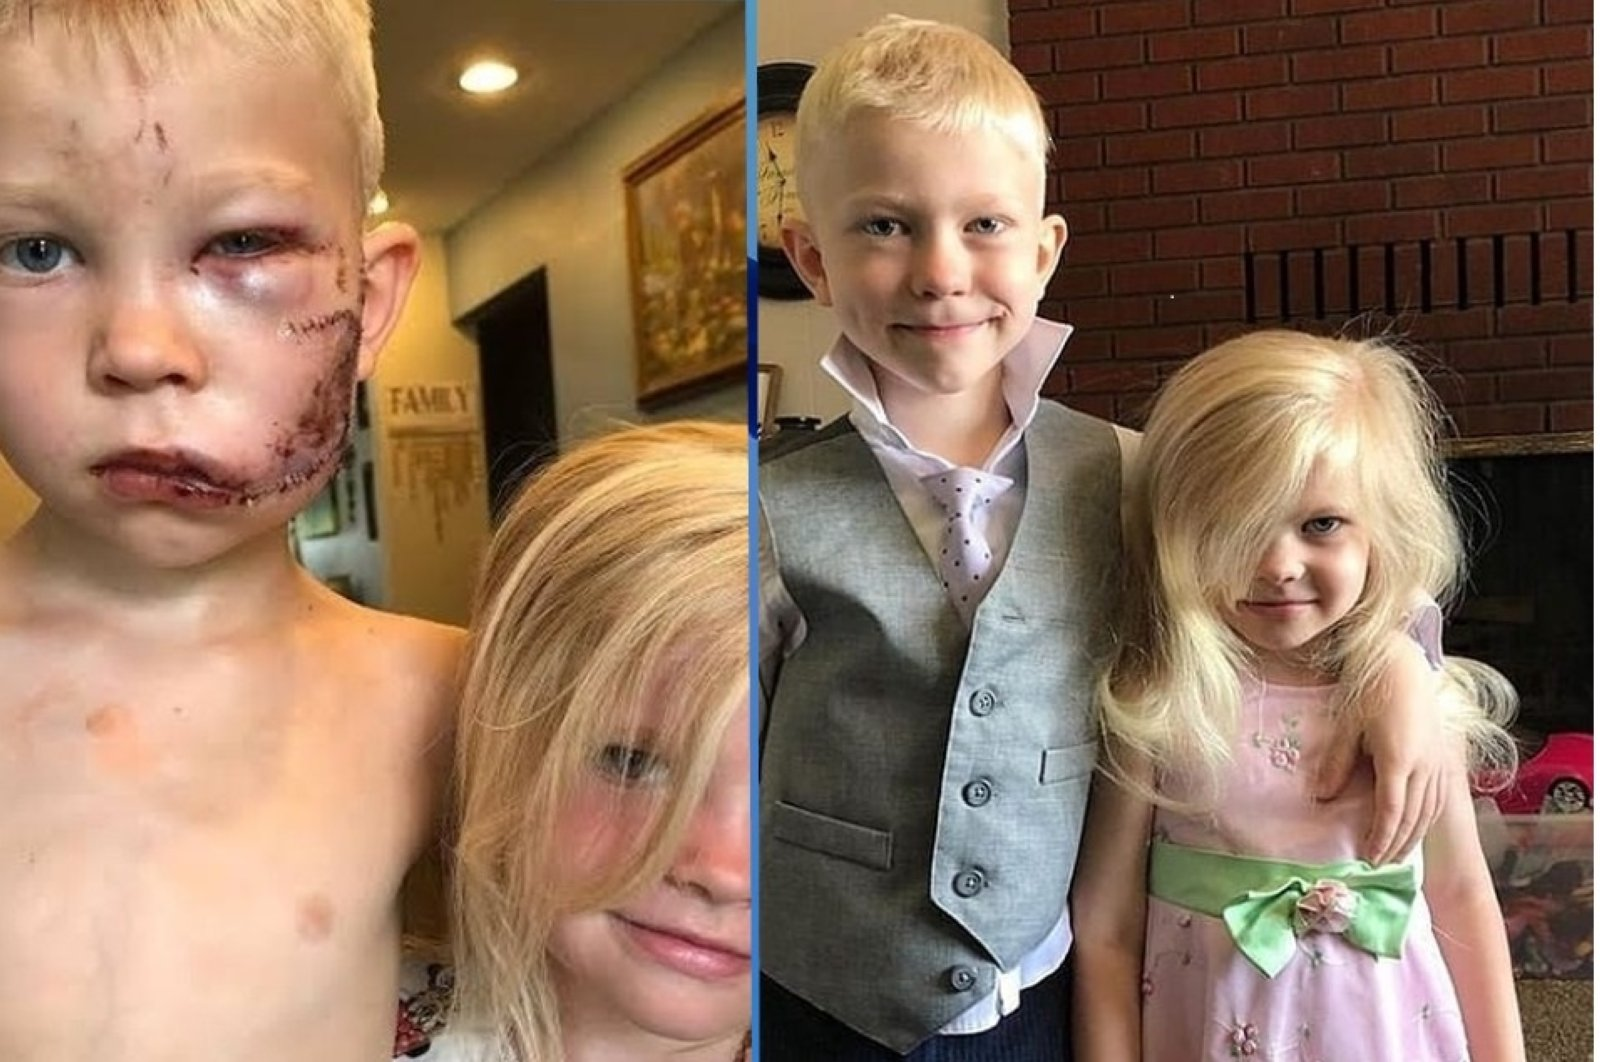 The photos show Bridger Walker and his sister before and after the attack, July 11, 2020. (Retrieved from Instagram)